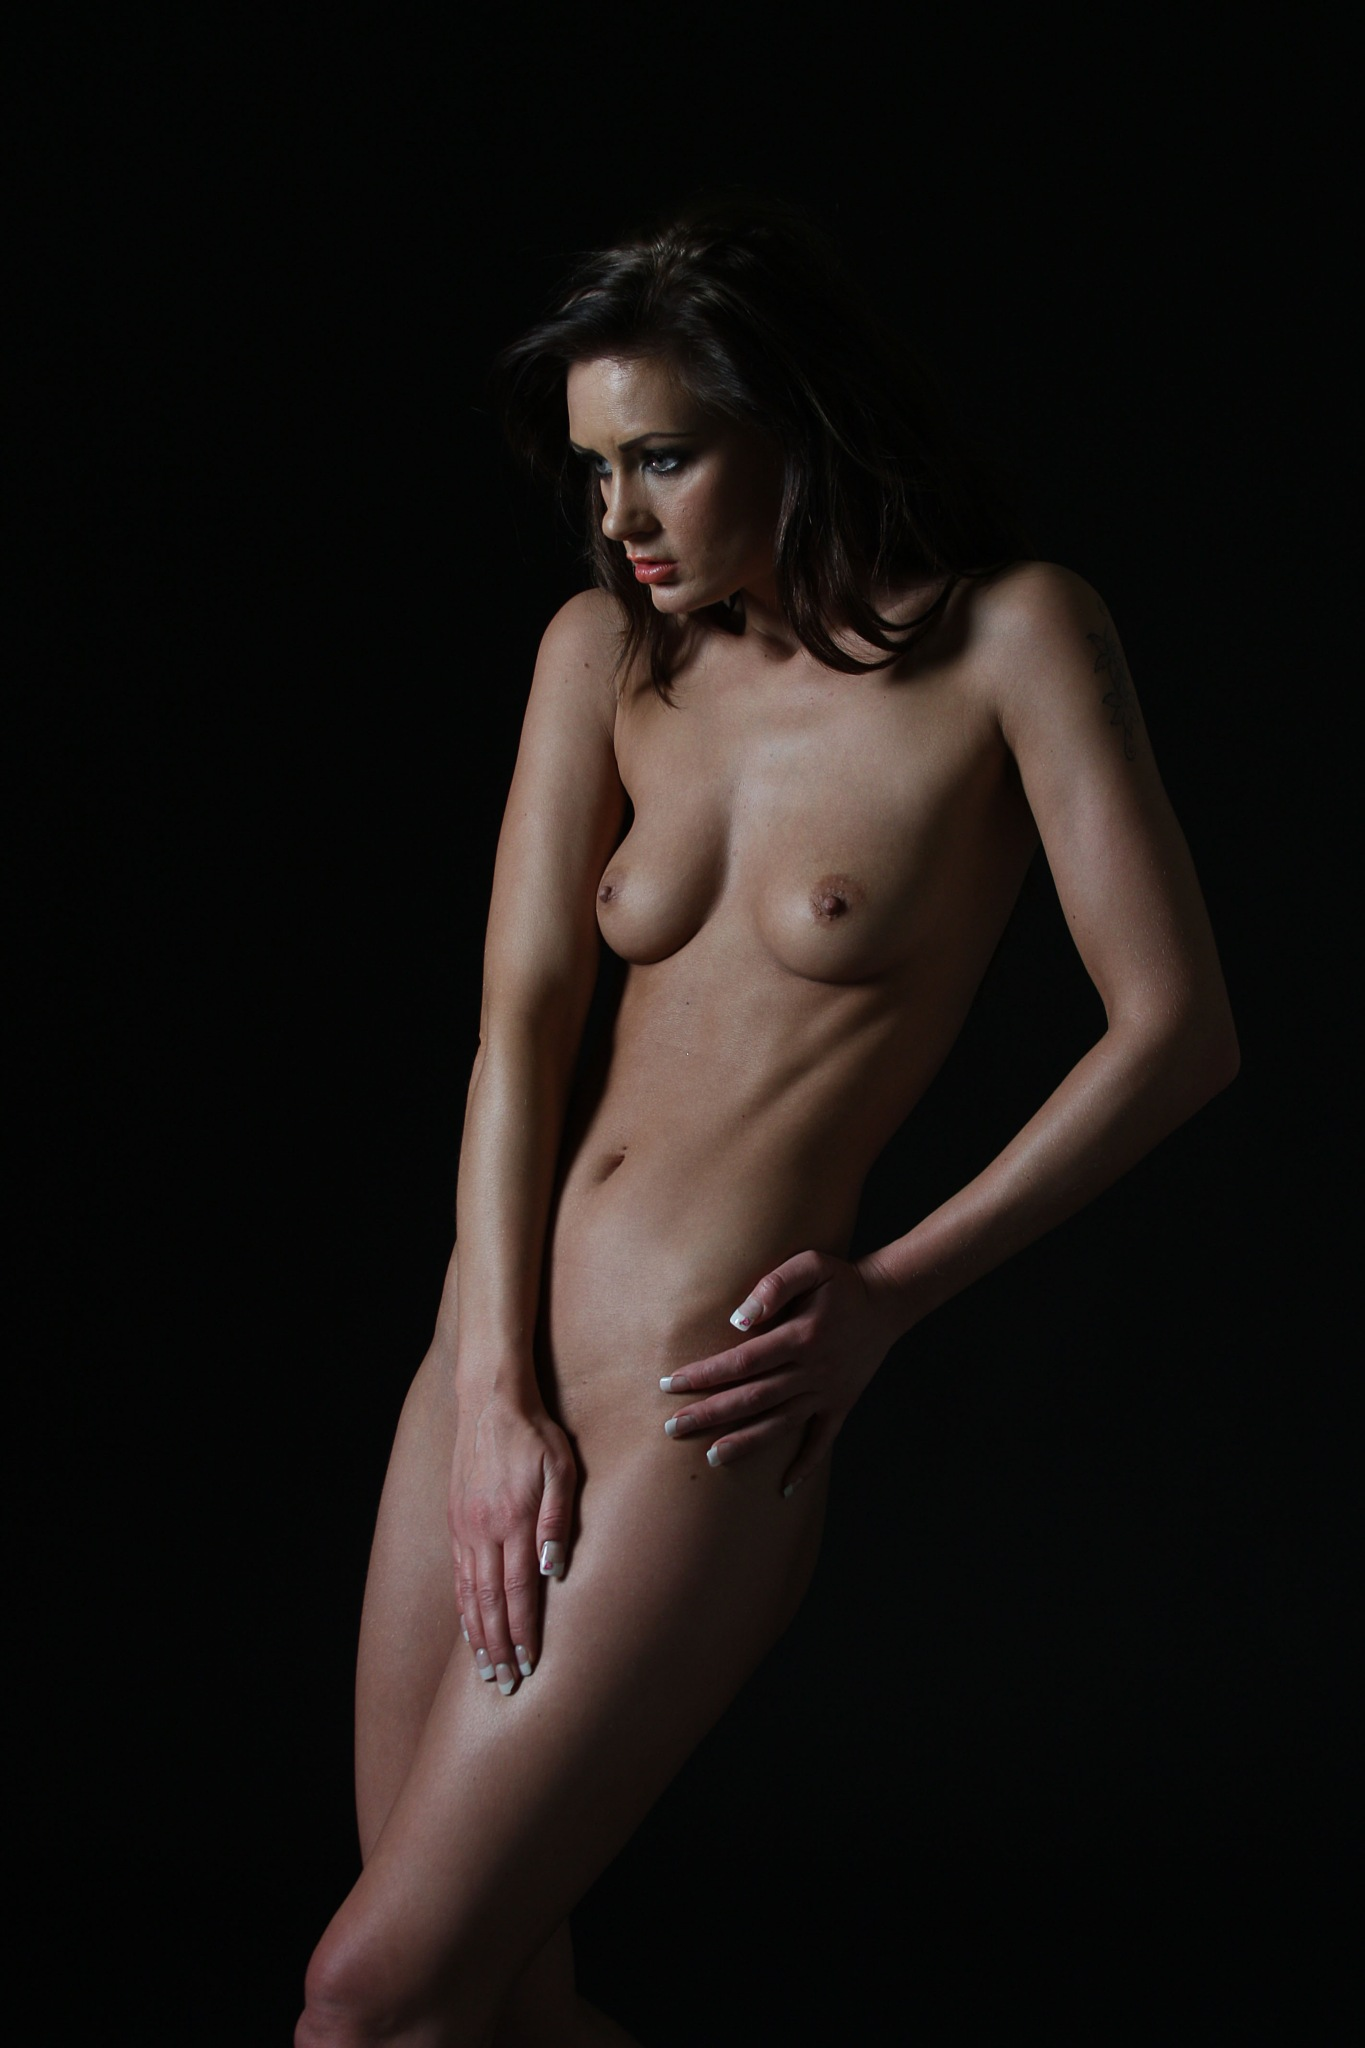 Nude in Colour by NickJamesPhotography